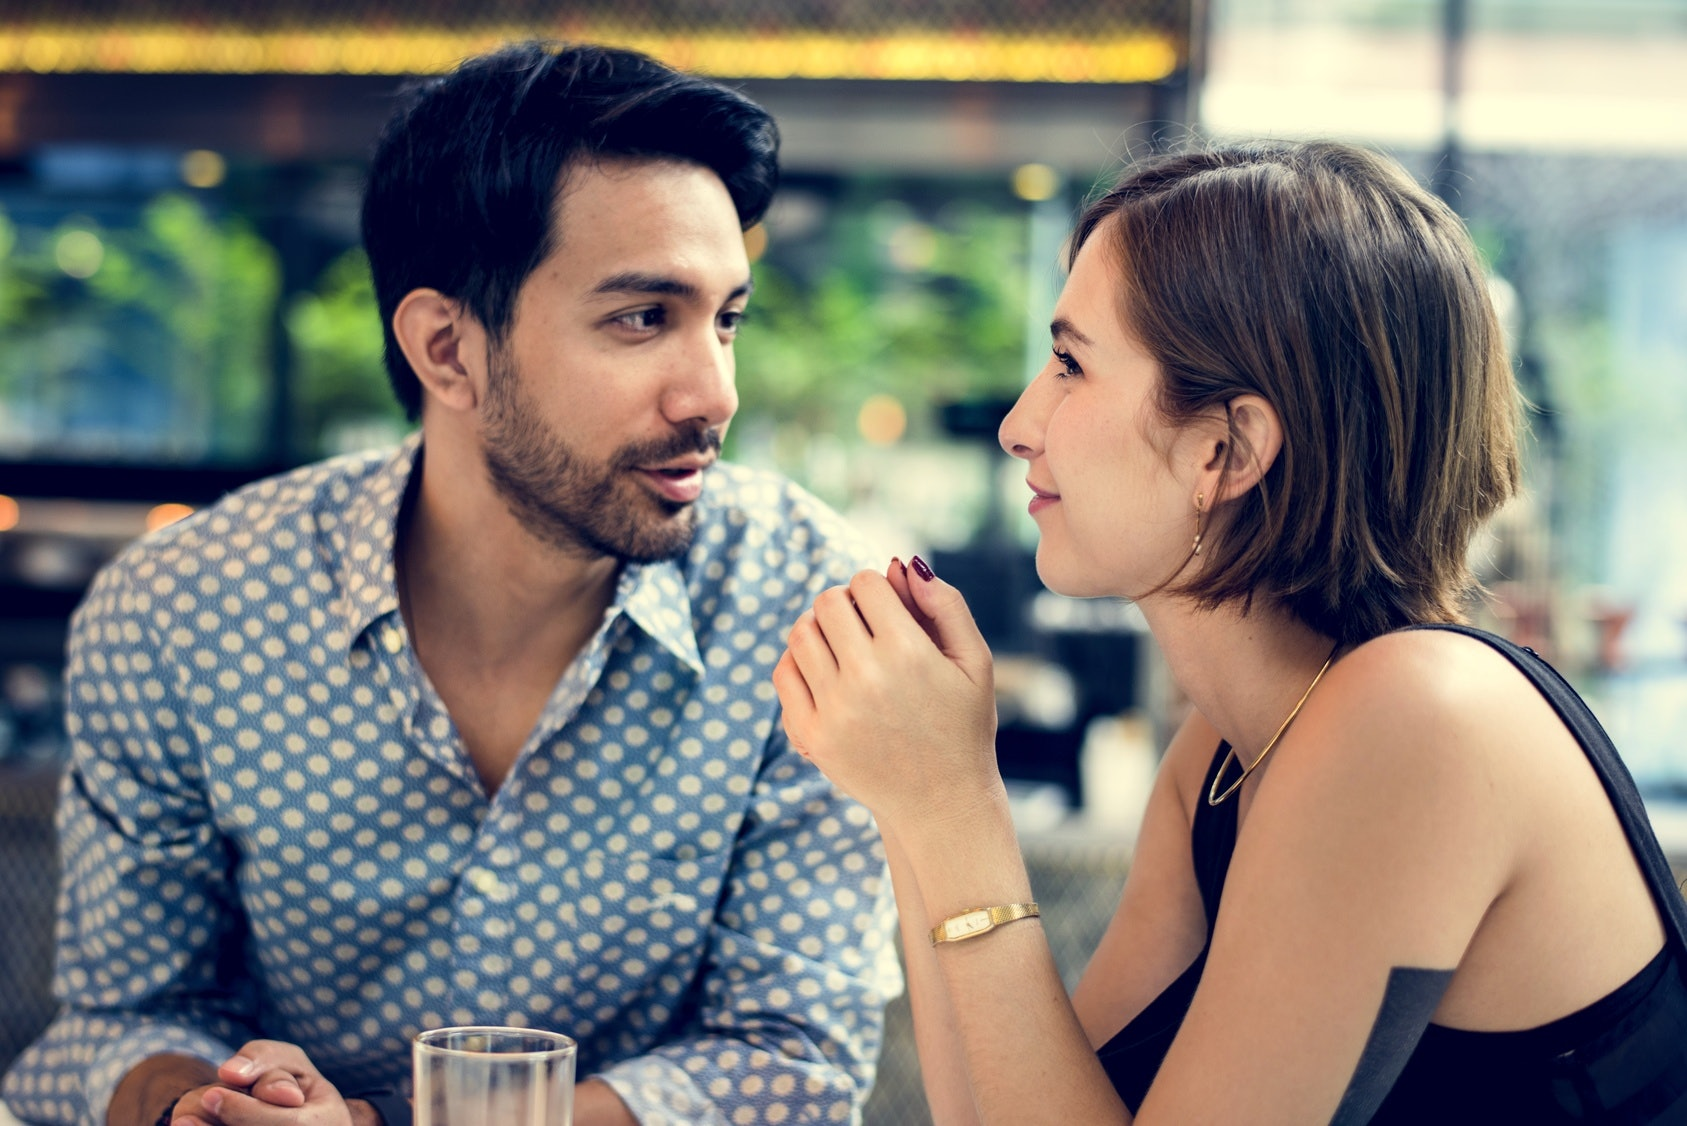 How make lasting impression first date